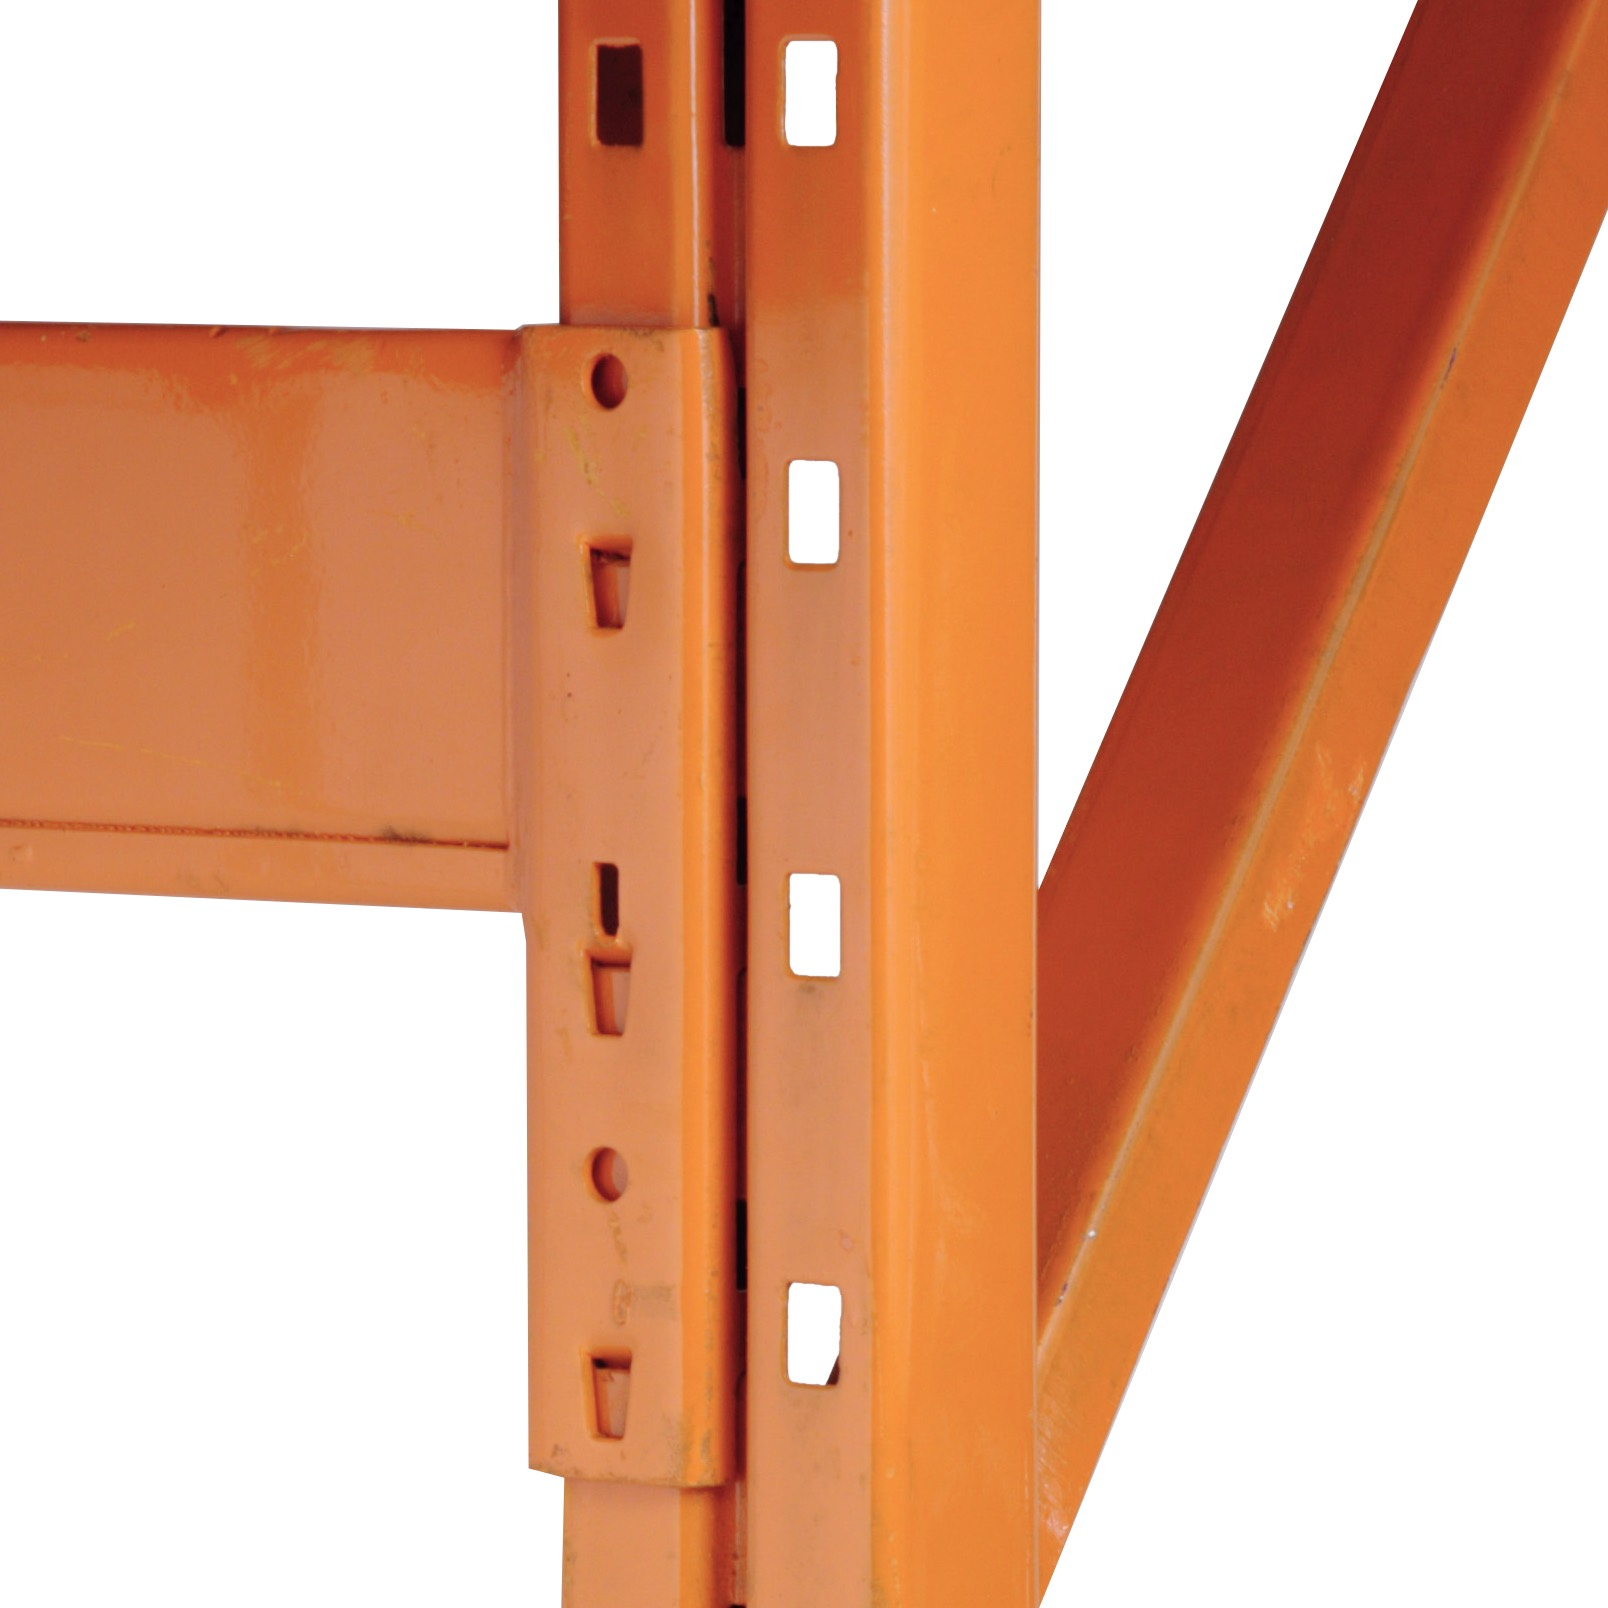 The Redirack upright frames feature rectangular face punch-out slots and side holes to accept the hooks on the Redirack beams.